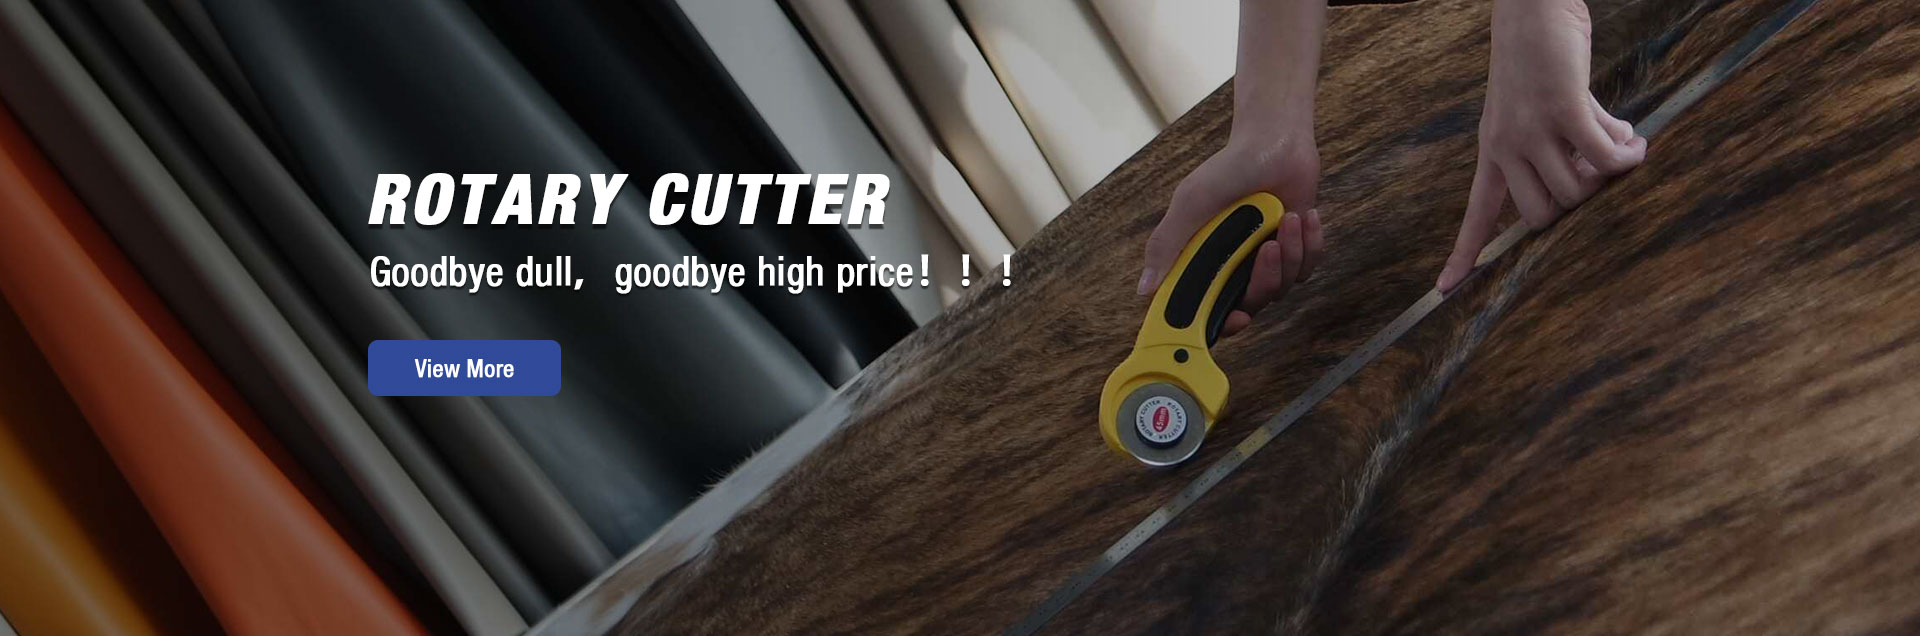 Rotary Cutter Blade